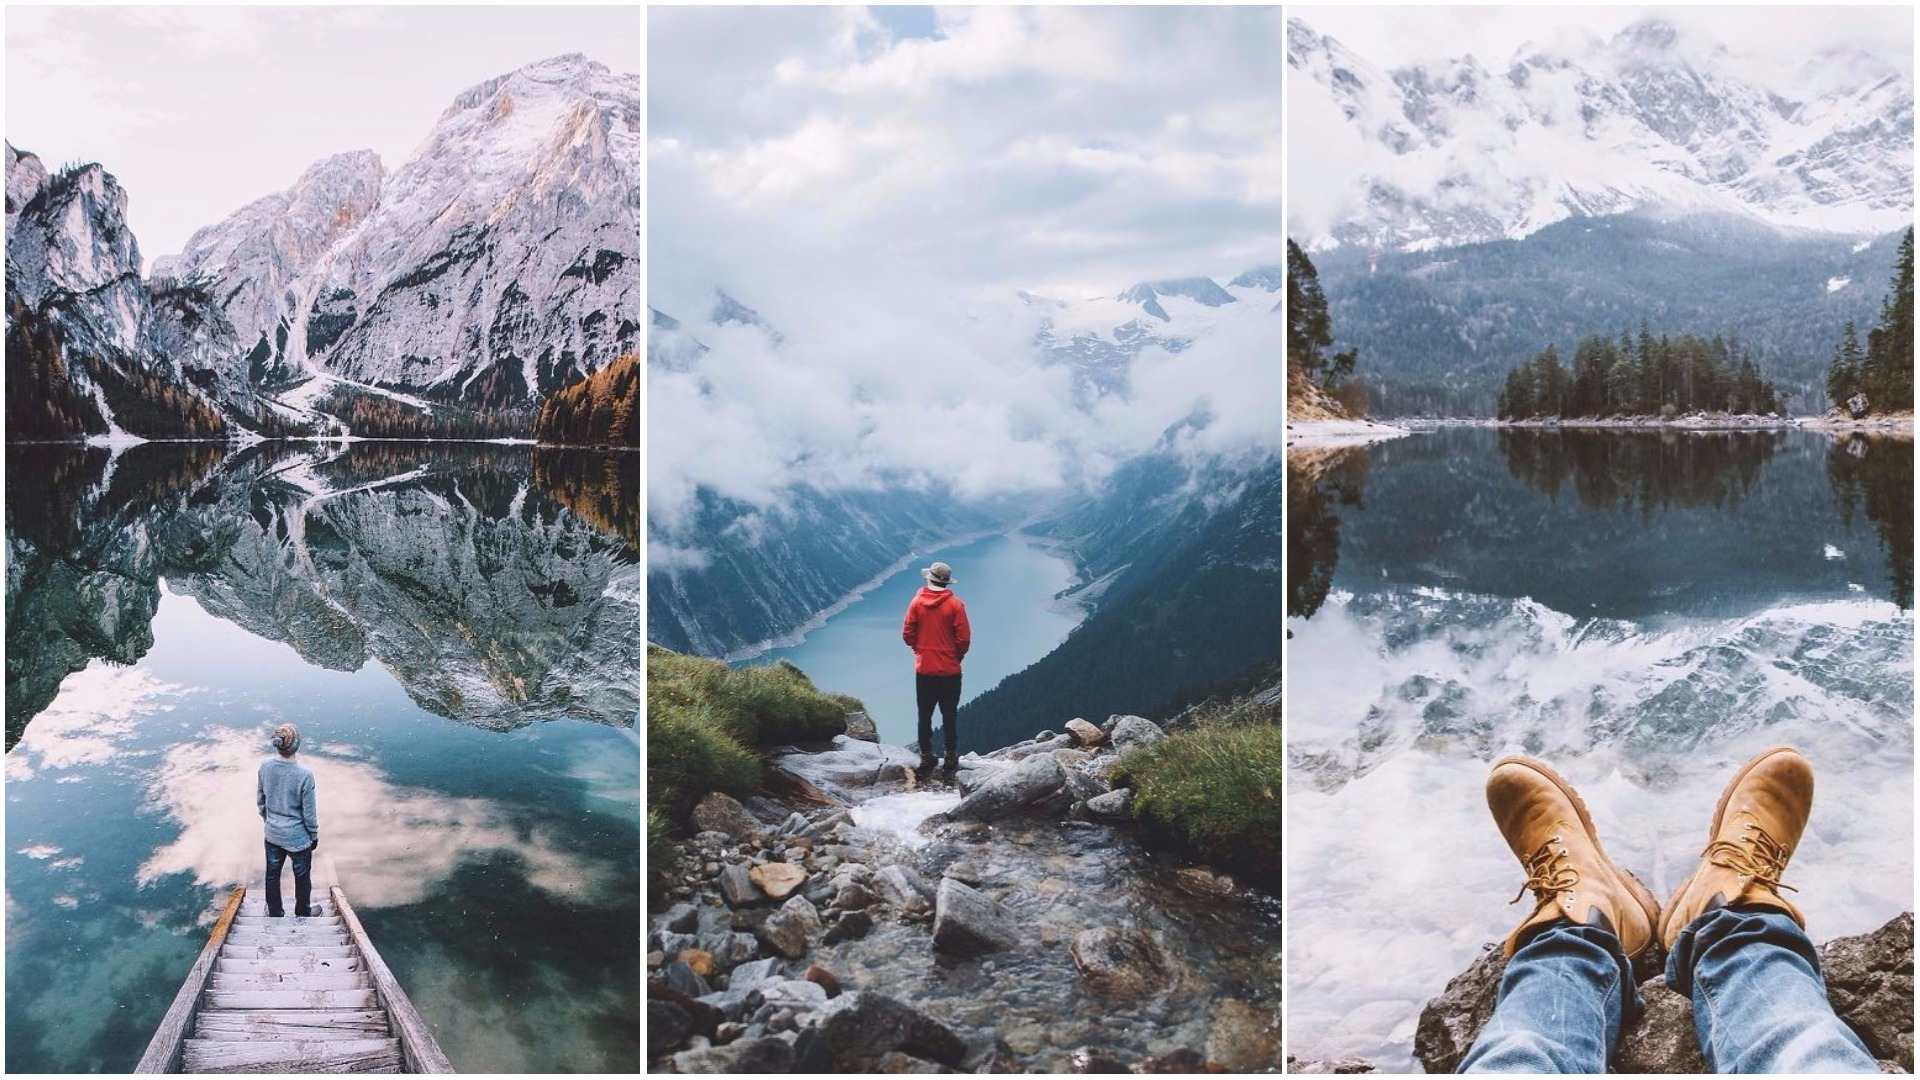 This 16-Year-Old's Instagram Will Inspire You To Seek Bliss In Nature